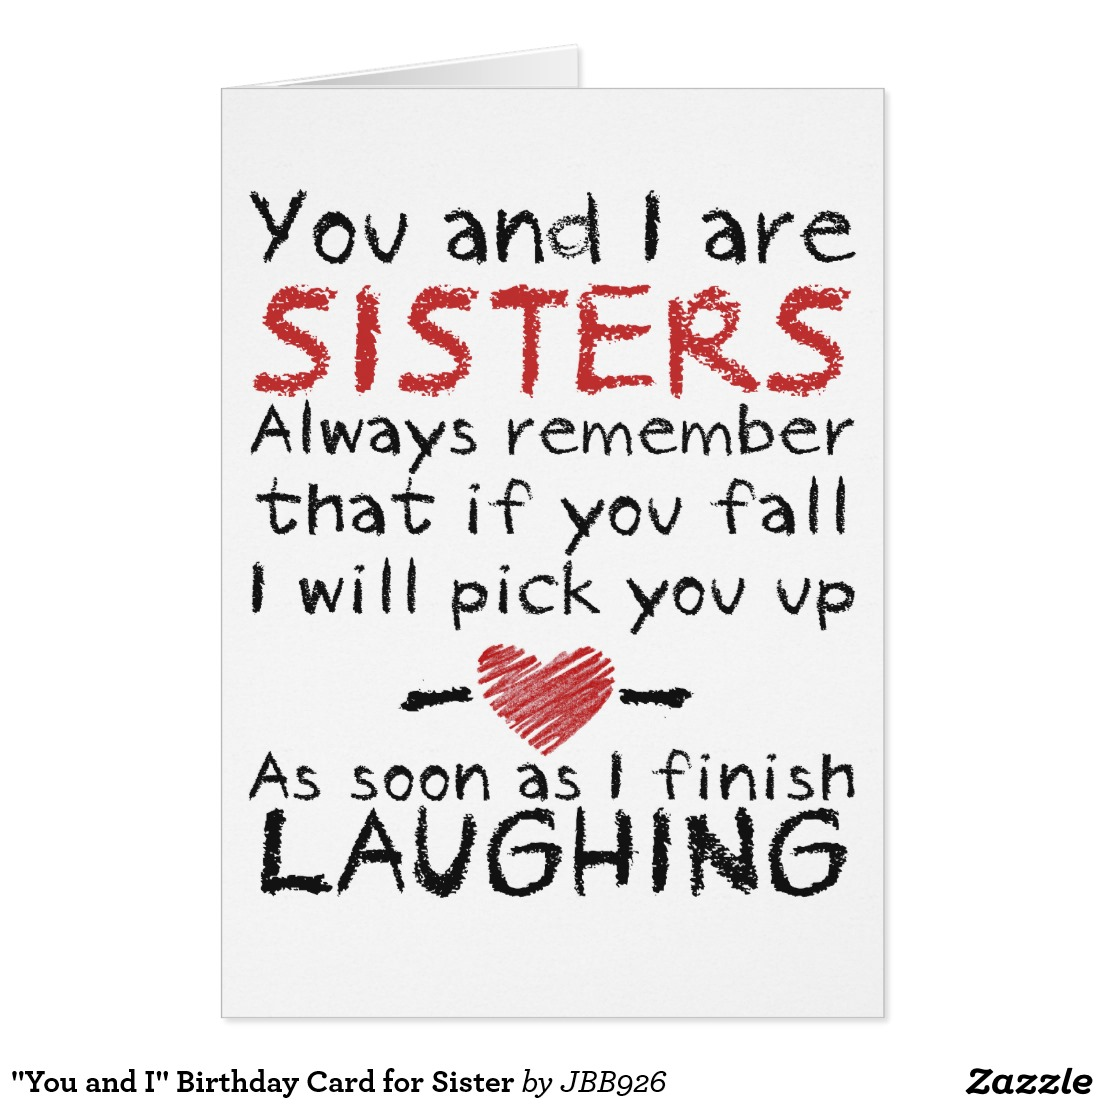 Quotes About Sister 564 Broken Glass Circuit Board Iphone 5 Cases Zazzle Yov And I Are Sisters Always Remember That If Fatt Wilt Pick